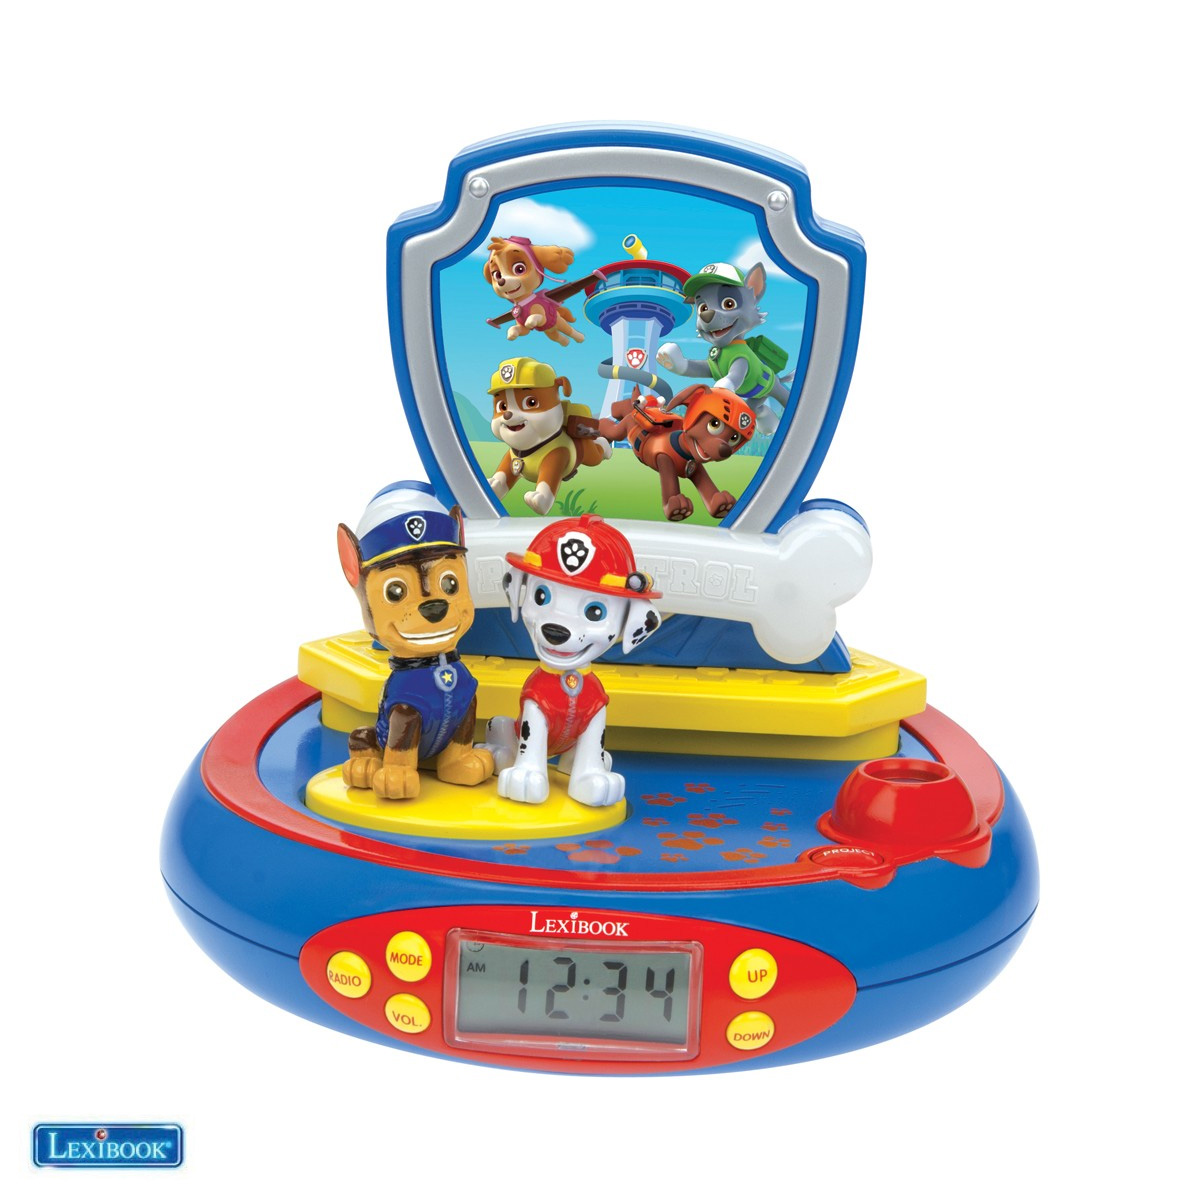 Lexibook - Paw Patrol 3D Chase Projector clock with Super Hero Sounds (RP500PA)